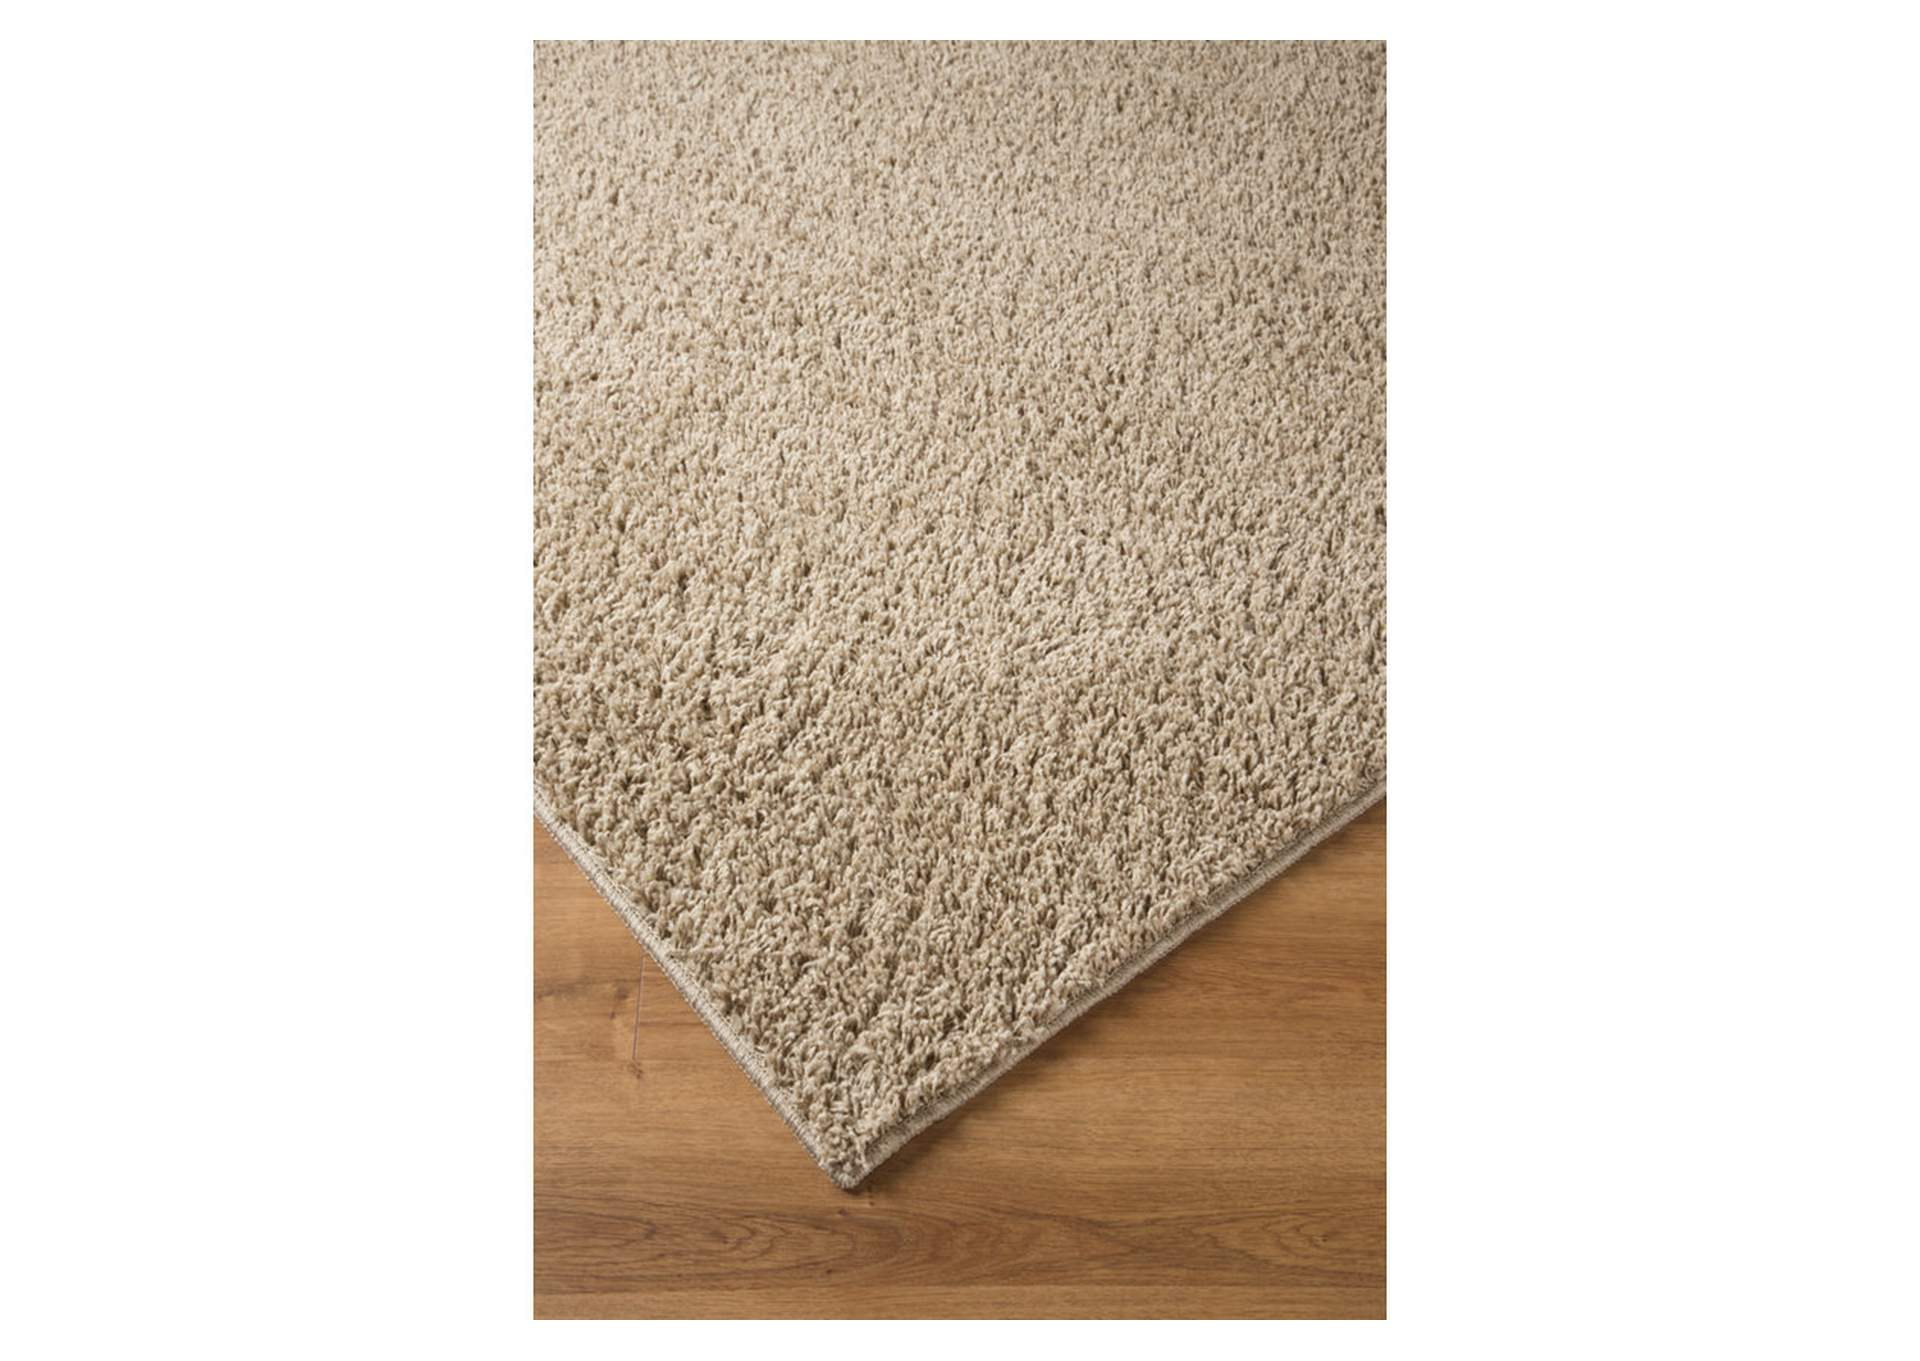 Caci Beige Medium Rug,ABF Signature Design by Ashley